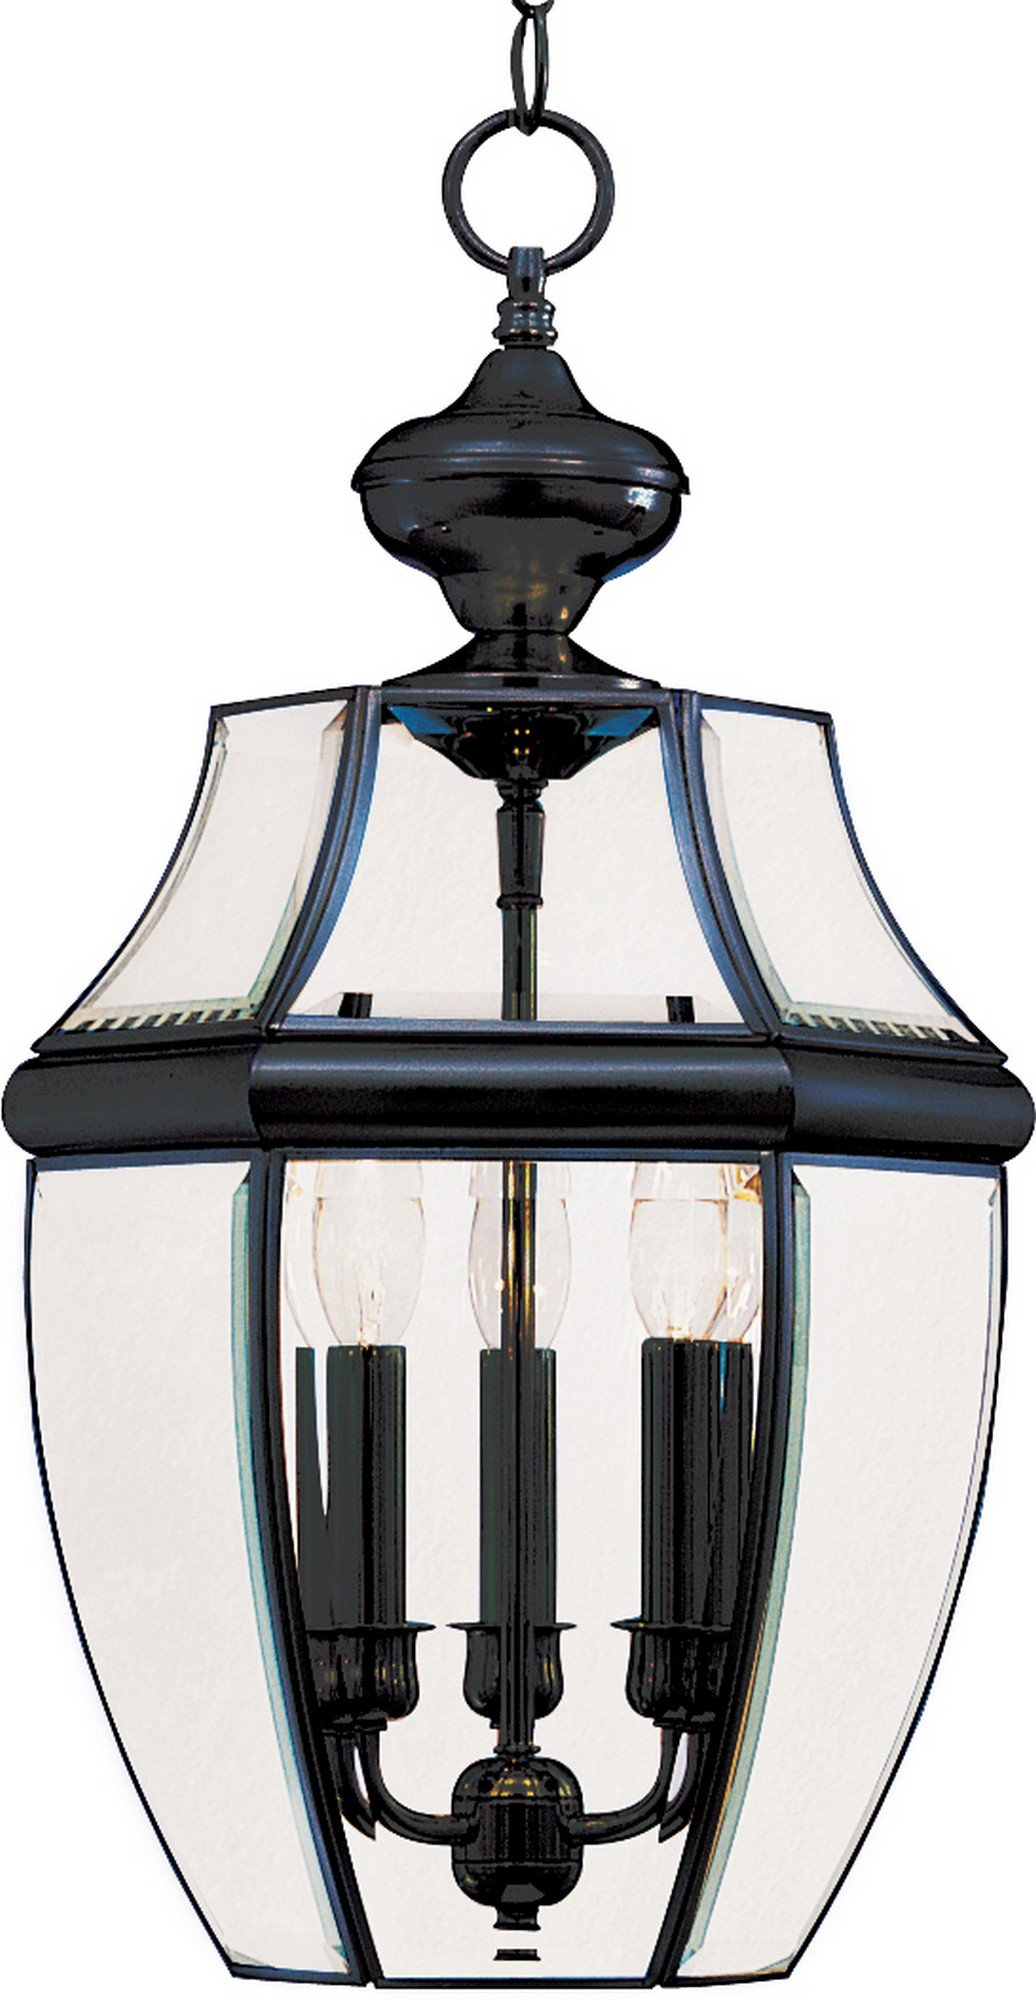 Maxim 6095CLBK South Park 3-Light Outdoor Hanging Lantern, Black Finish, Clear Glass, CA Incandescent Incandescent Bulb , 60W Max., Dry Safety Rating, Standard Dimmable, Fabric Shade Material, 2016 Rated Lumens